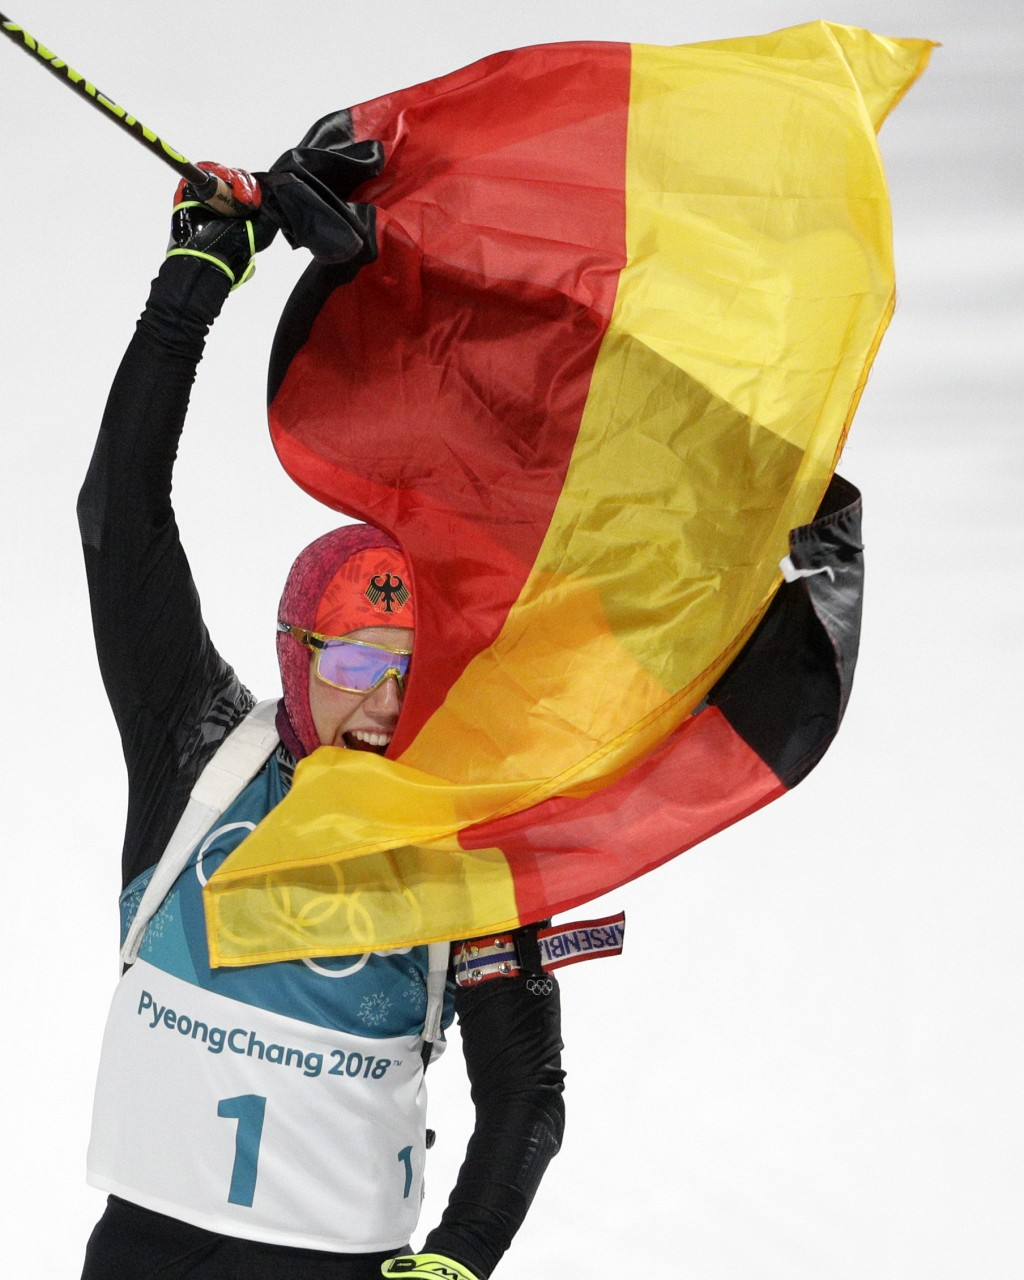 Laura Dahlmeier, of Germany, waves the German flag in the finish area after winning the gold medal in the women's 10-kilometer biathlon pursuit at the